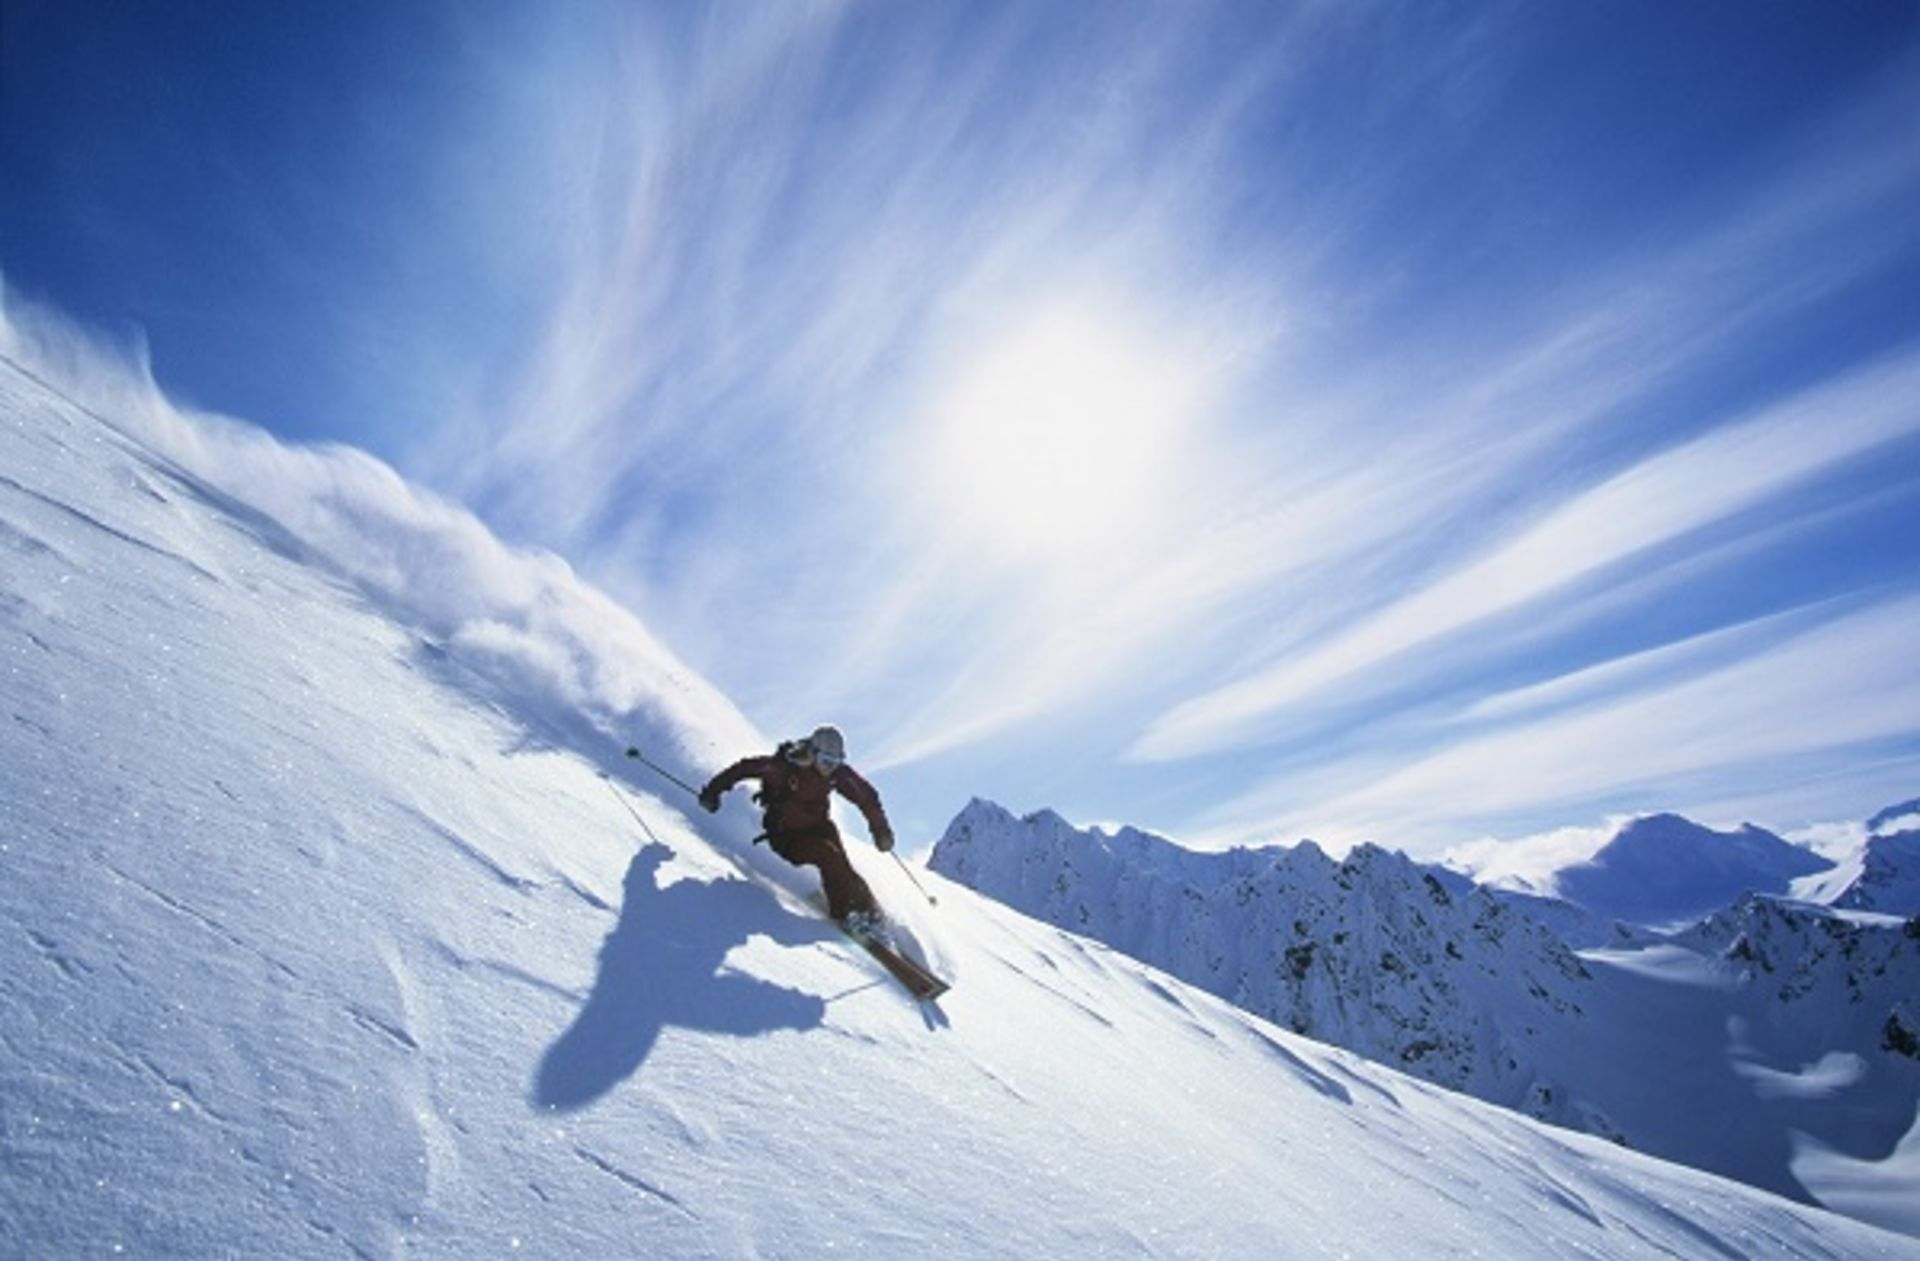 Reno Skiing Receives Accolades from National Geographic